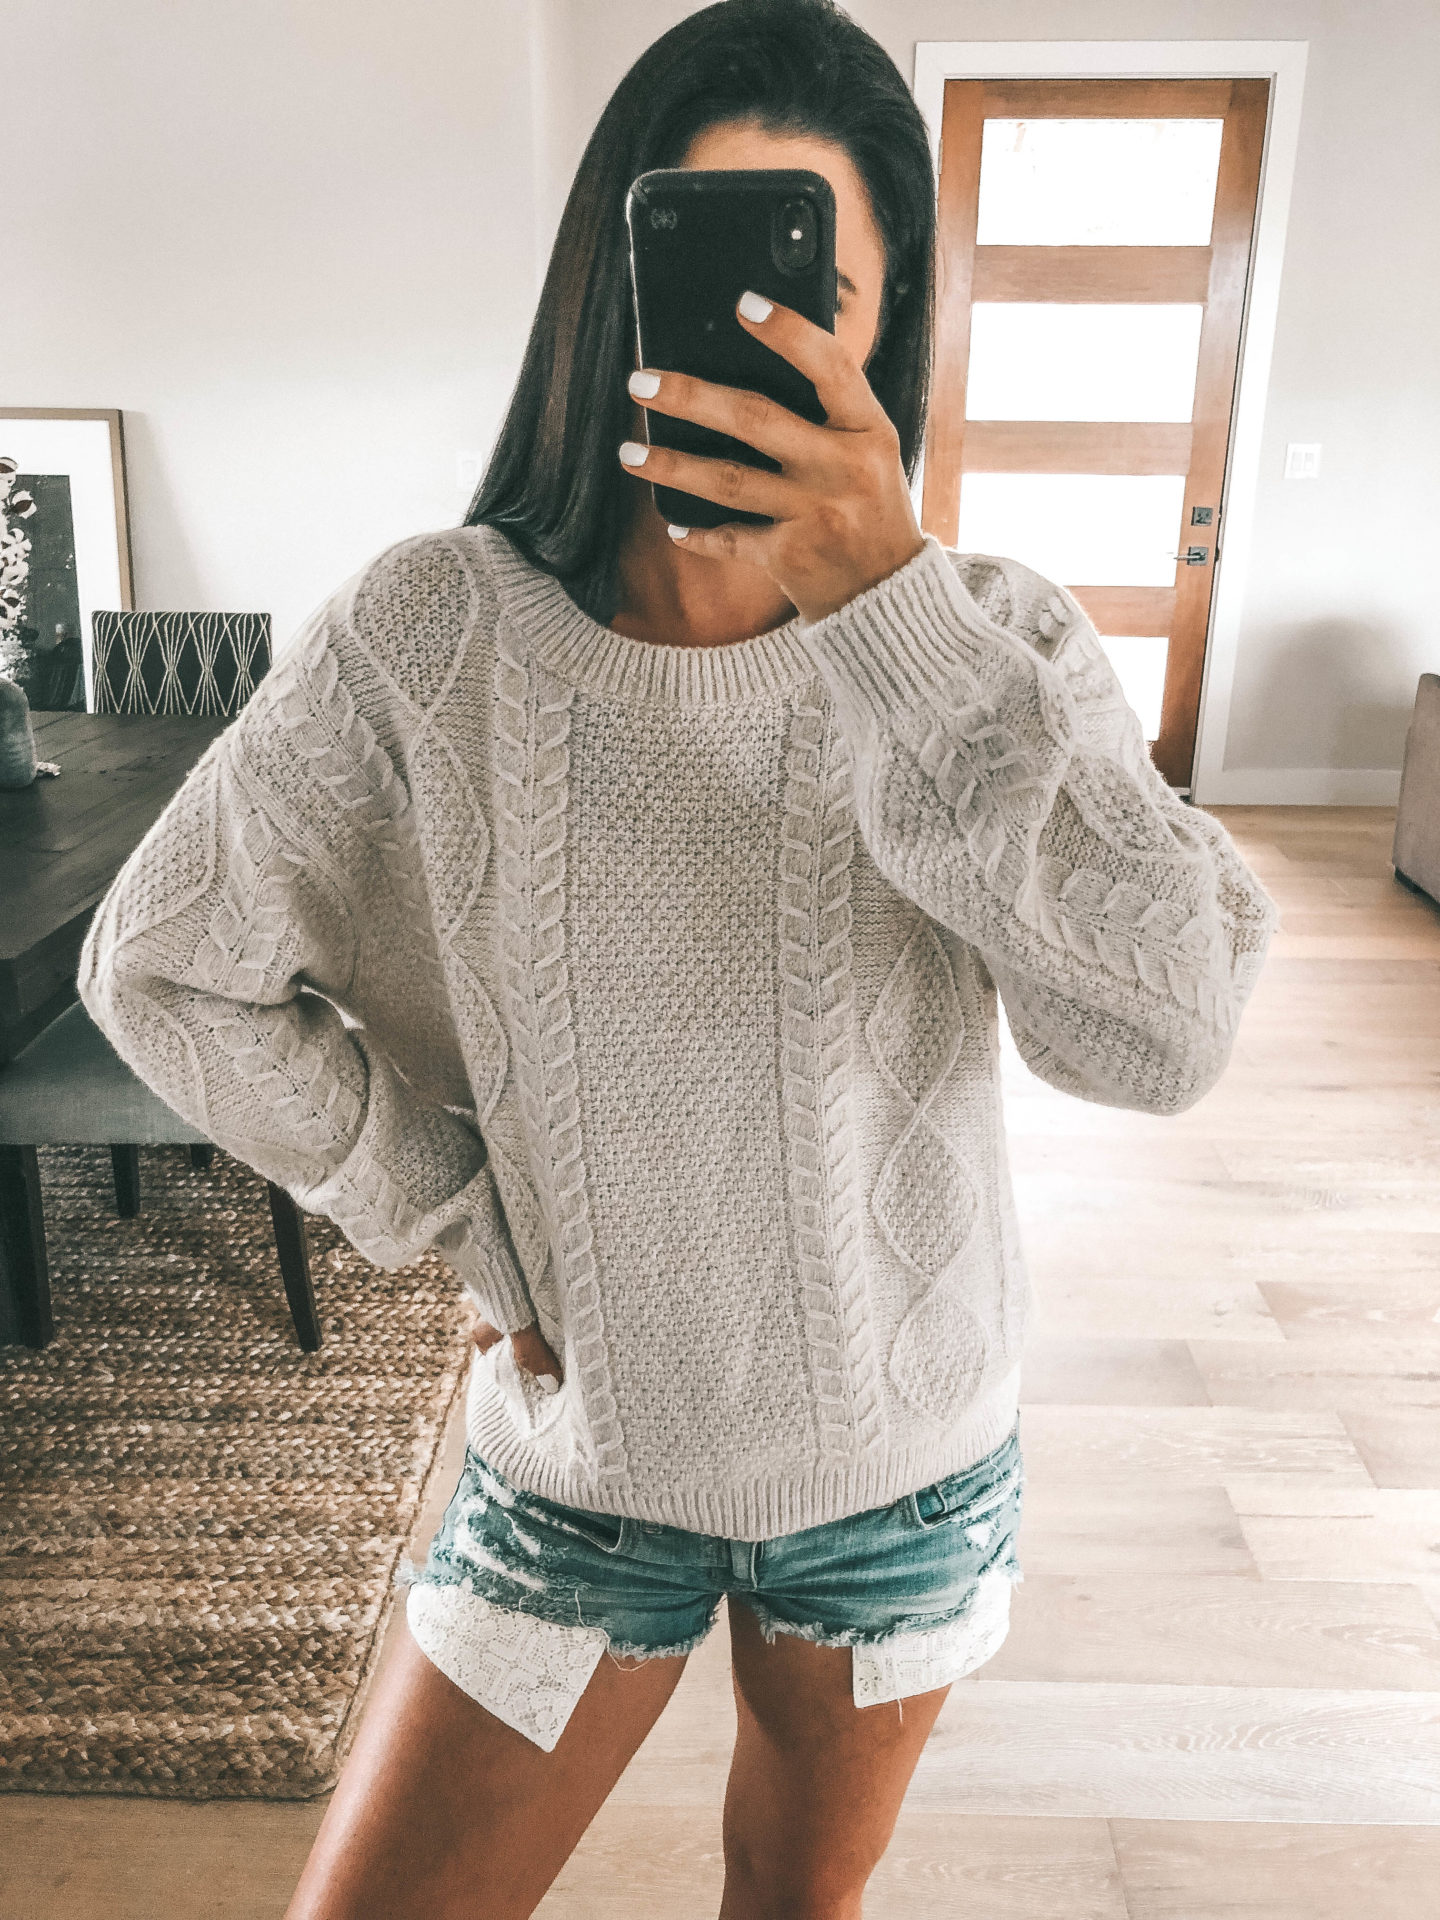 Tips on How to Shop the 2019 Nordstrom Anniversary SALE by popular fashion blog, Dressed to Kill: image of a woman taking a selfie with her smartphone and wearing a woven cable knit sweater and cut off denim shorts.